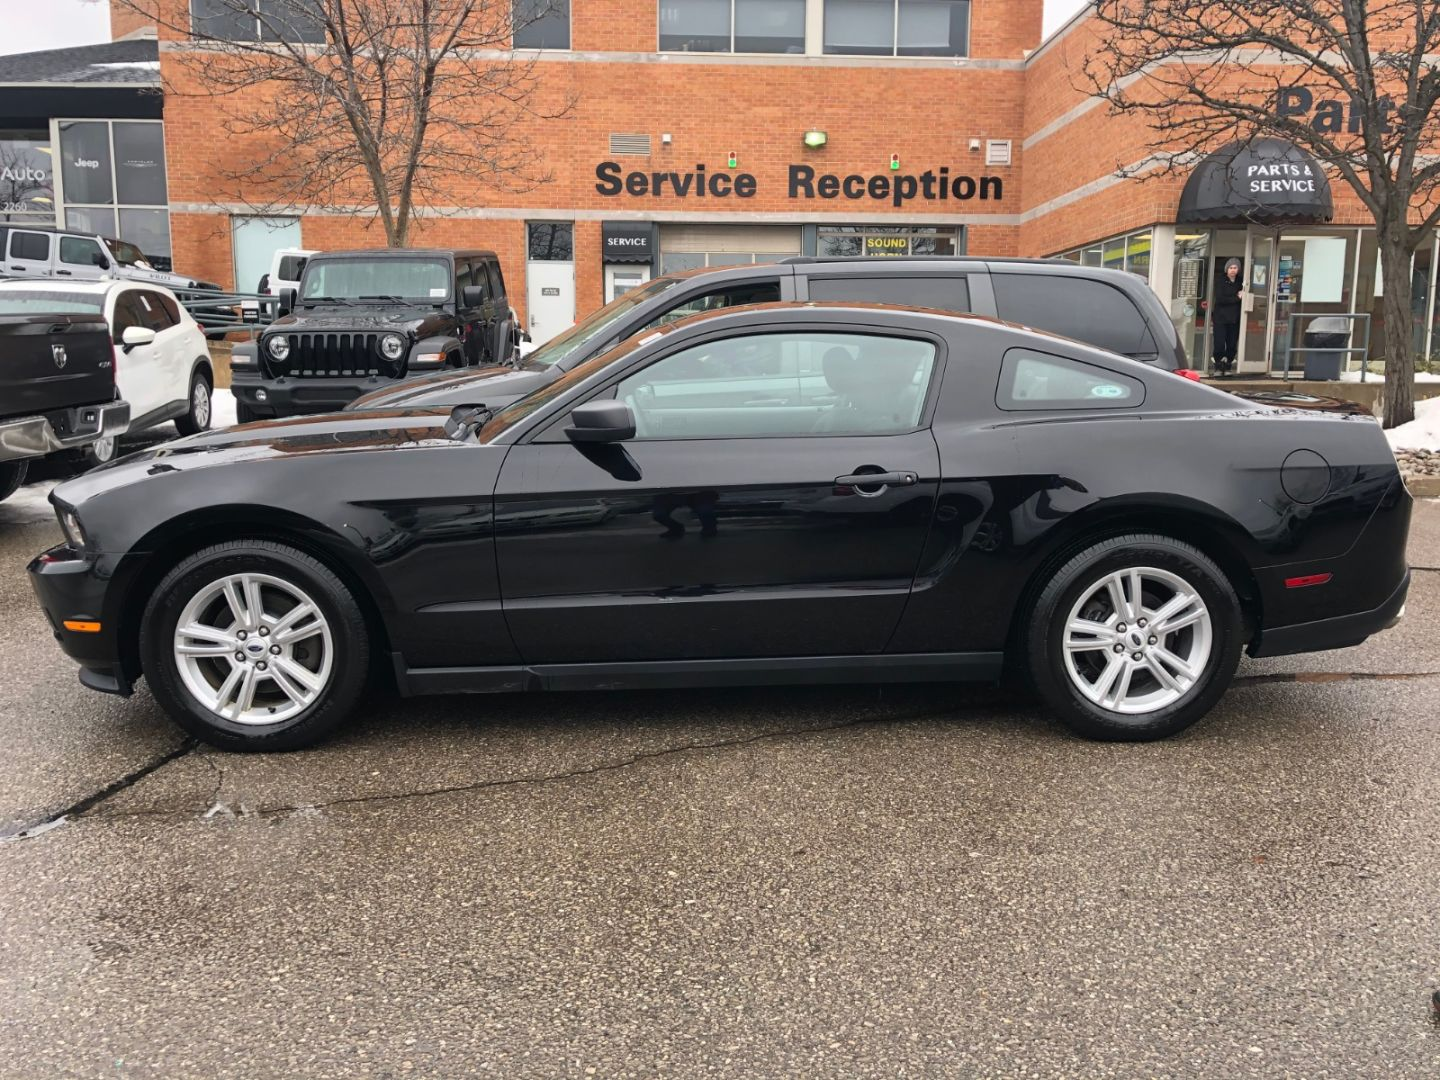 2012 Ford Mustang V6 for sale in Mississauga, Ontario